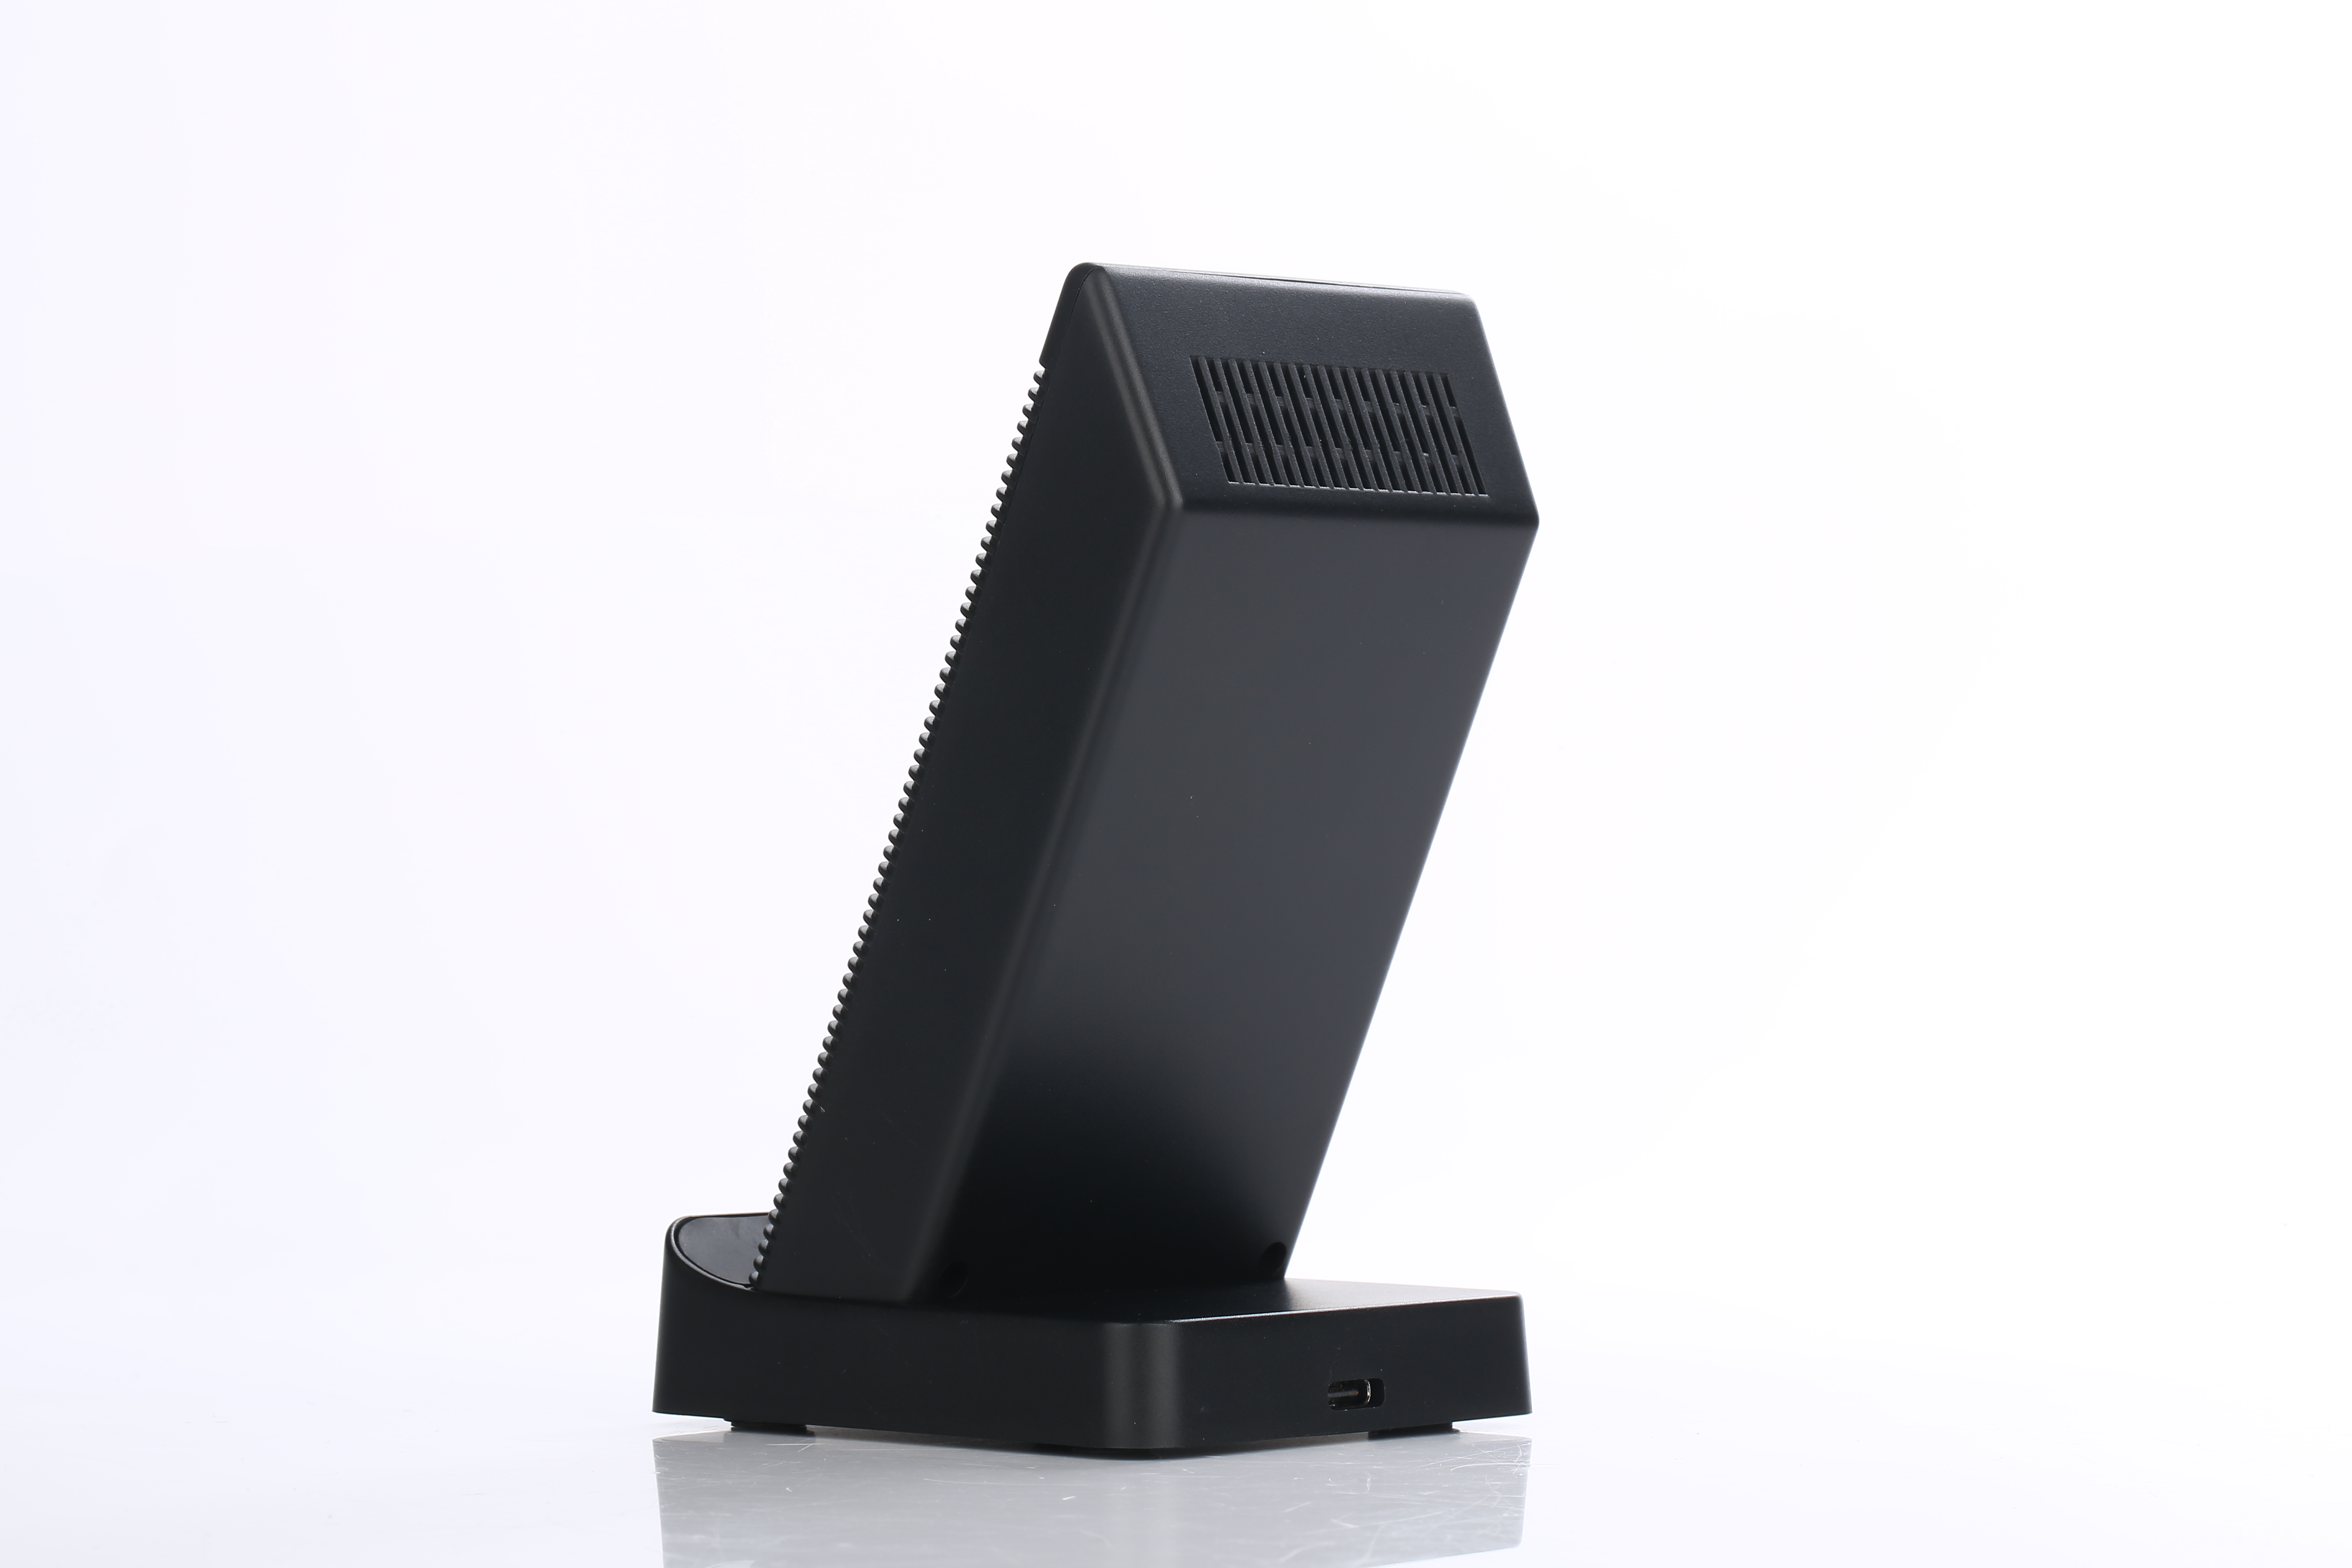 Super Fast Wireless Charger S200